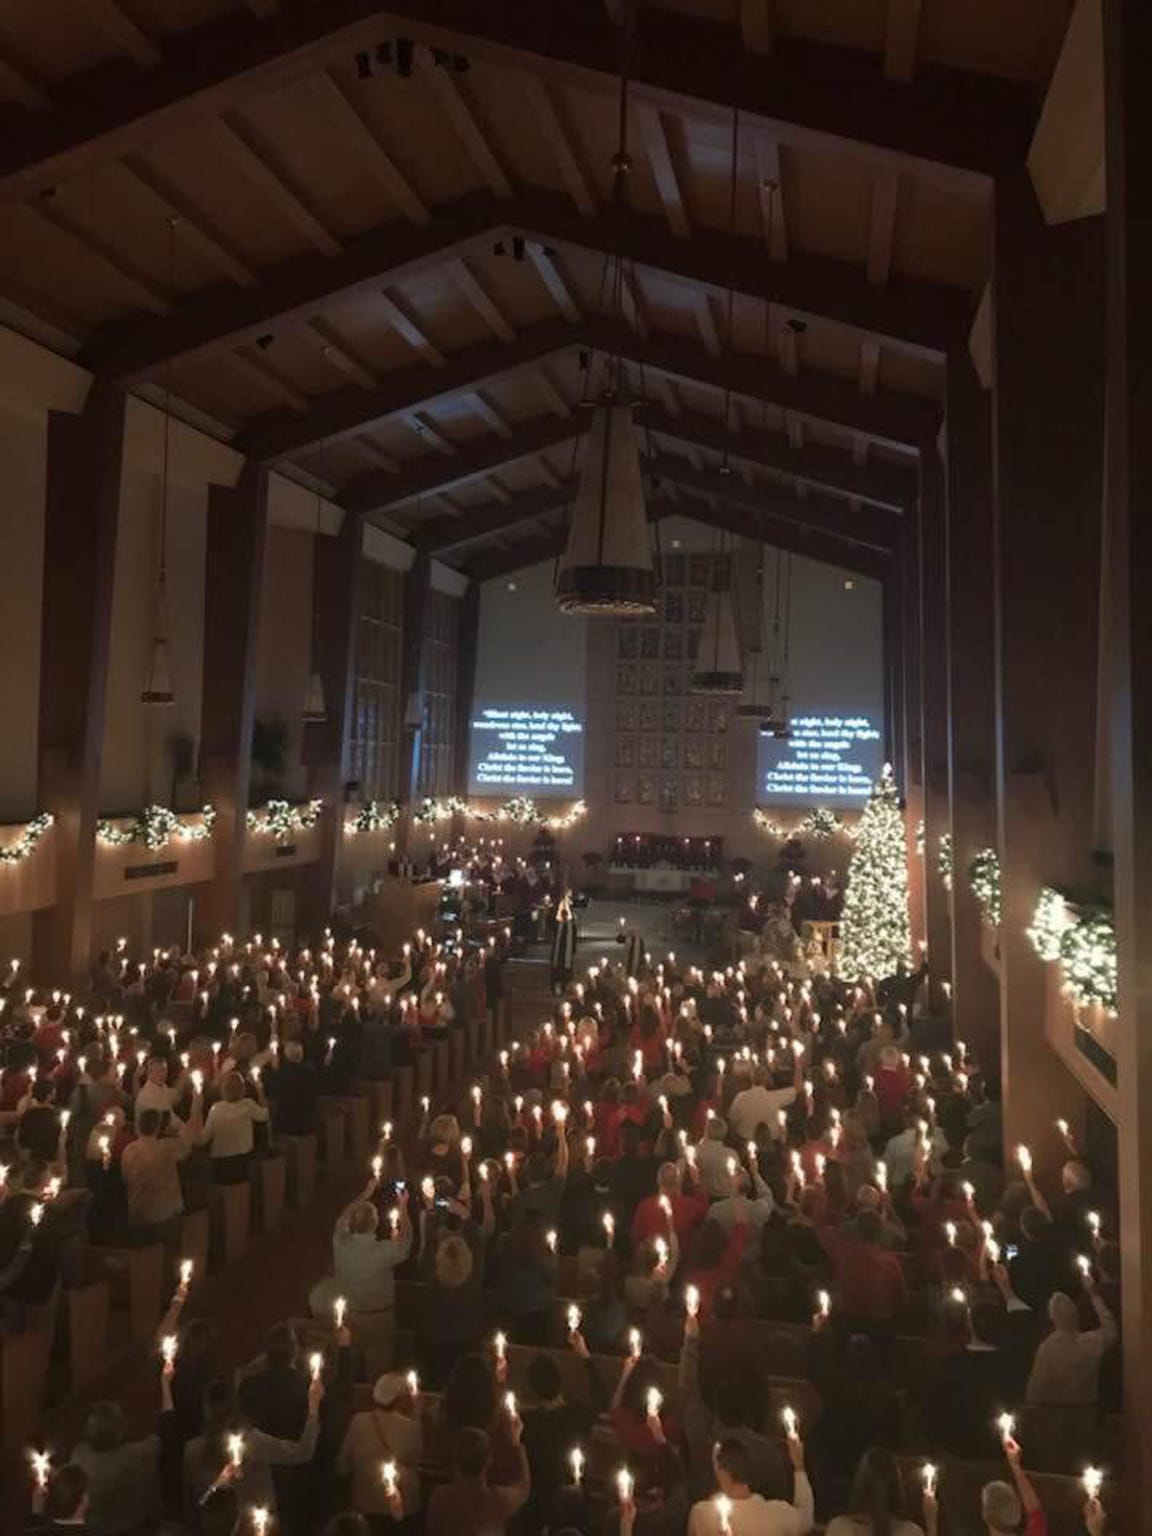 First United Methodist Church is among the area churches offering Christmas Eve worship services.